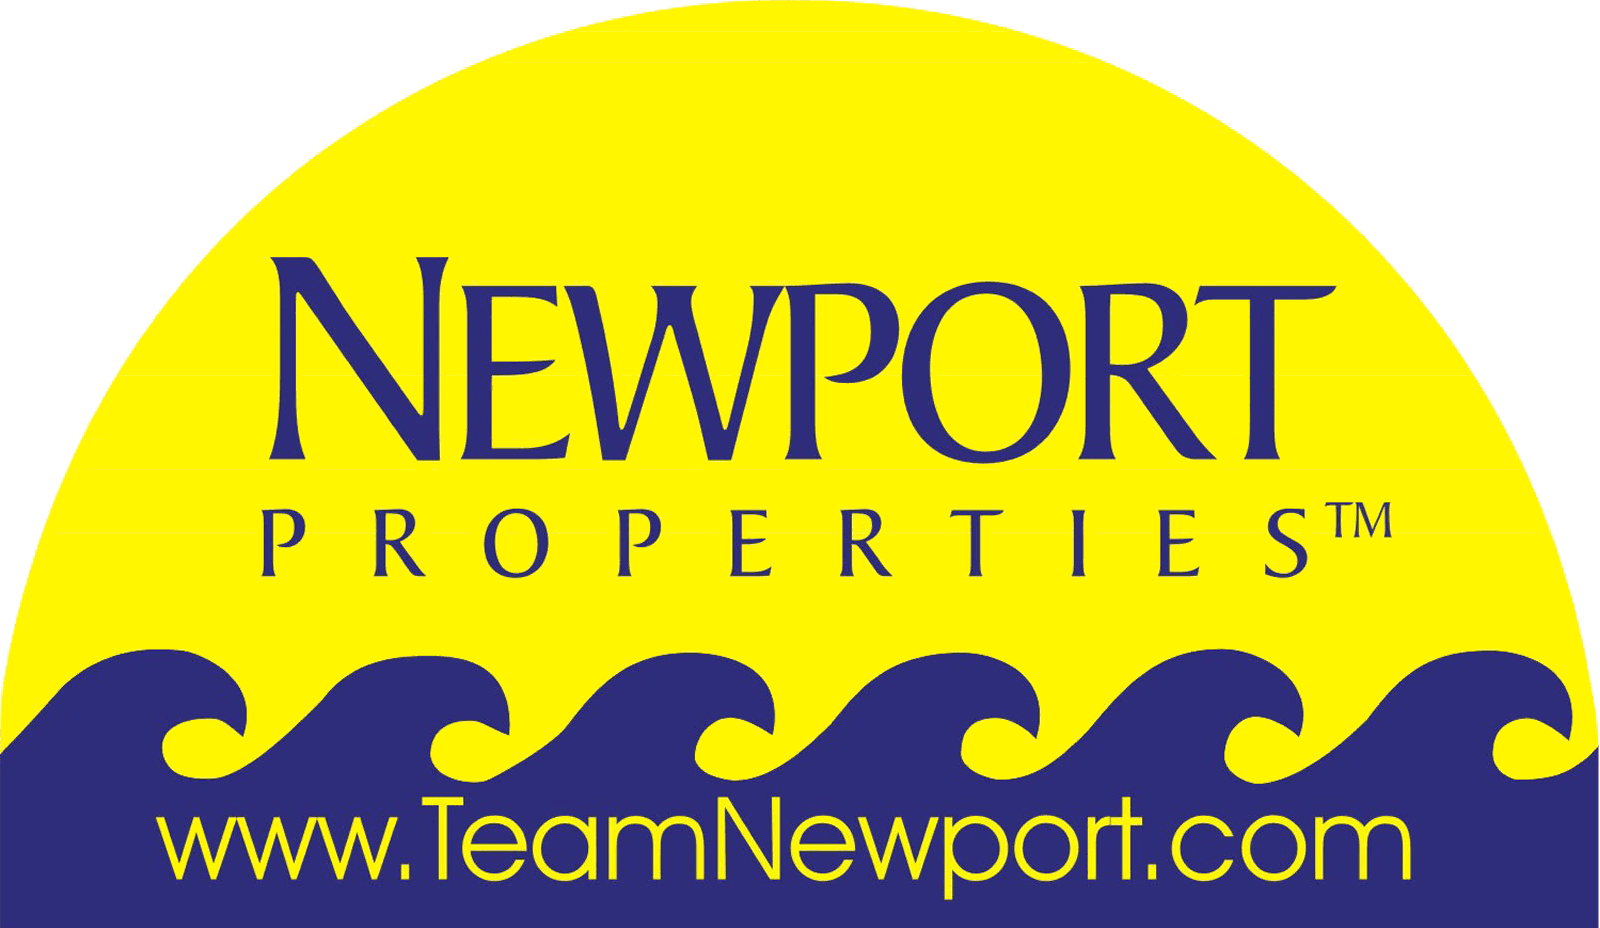 Newport Property Management Mooresville Nc